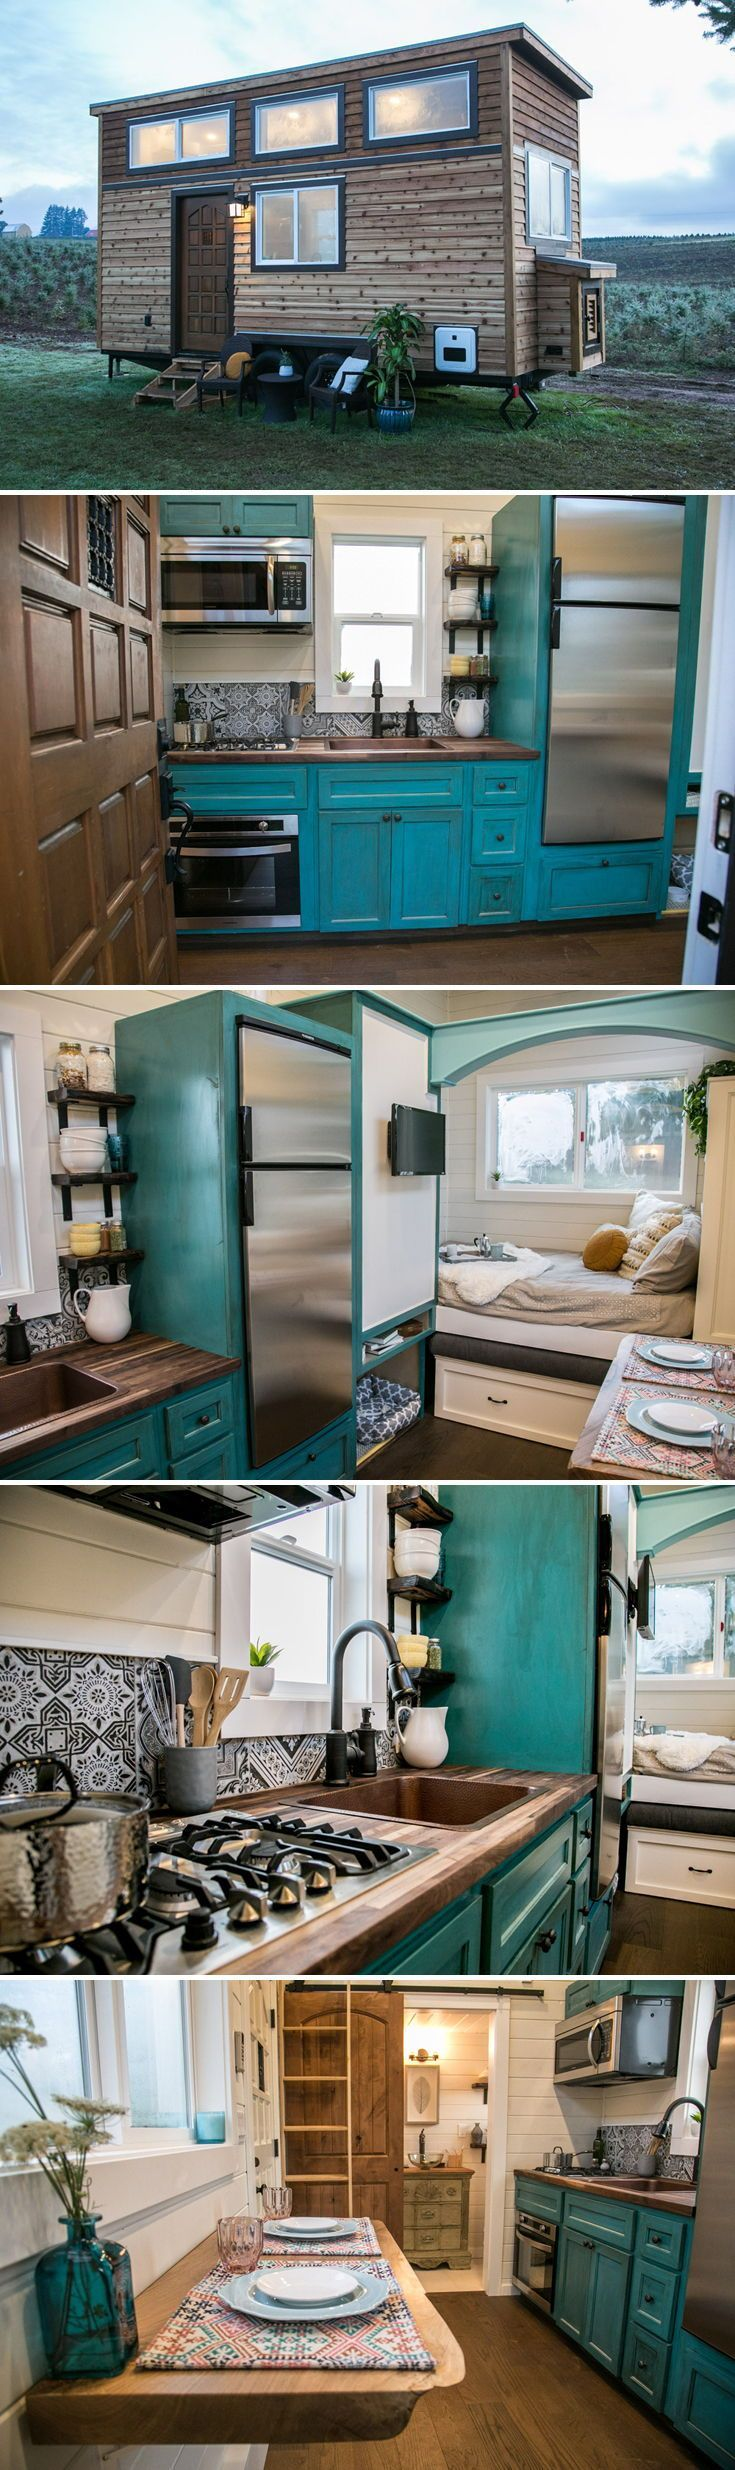 Archway Tiny Home by Tiny Heirloom #tinylivingideas